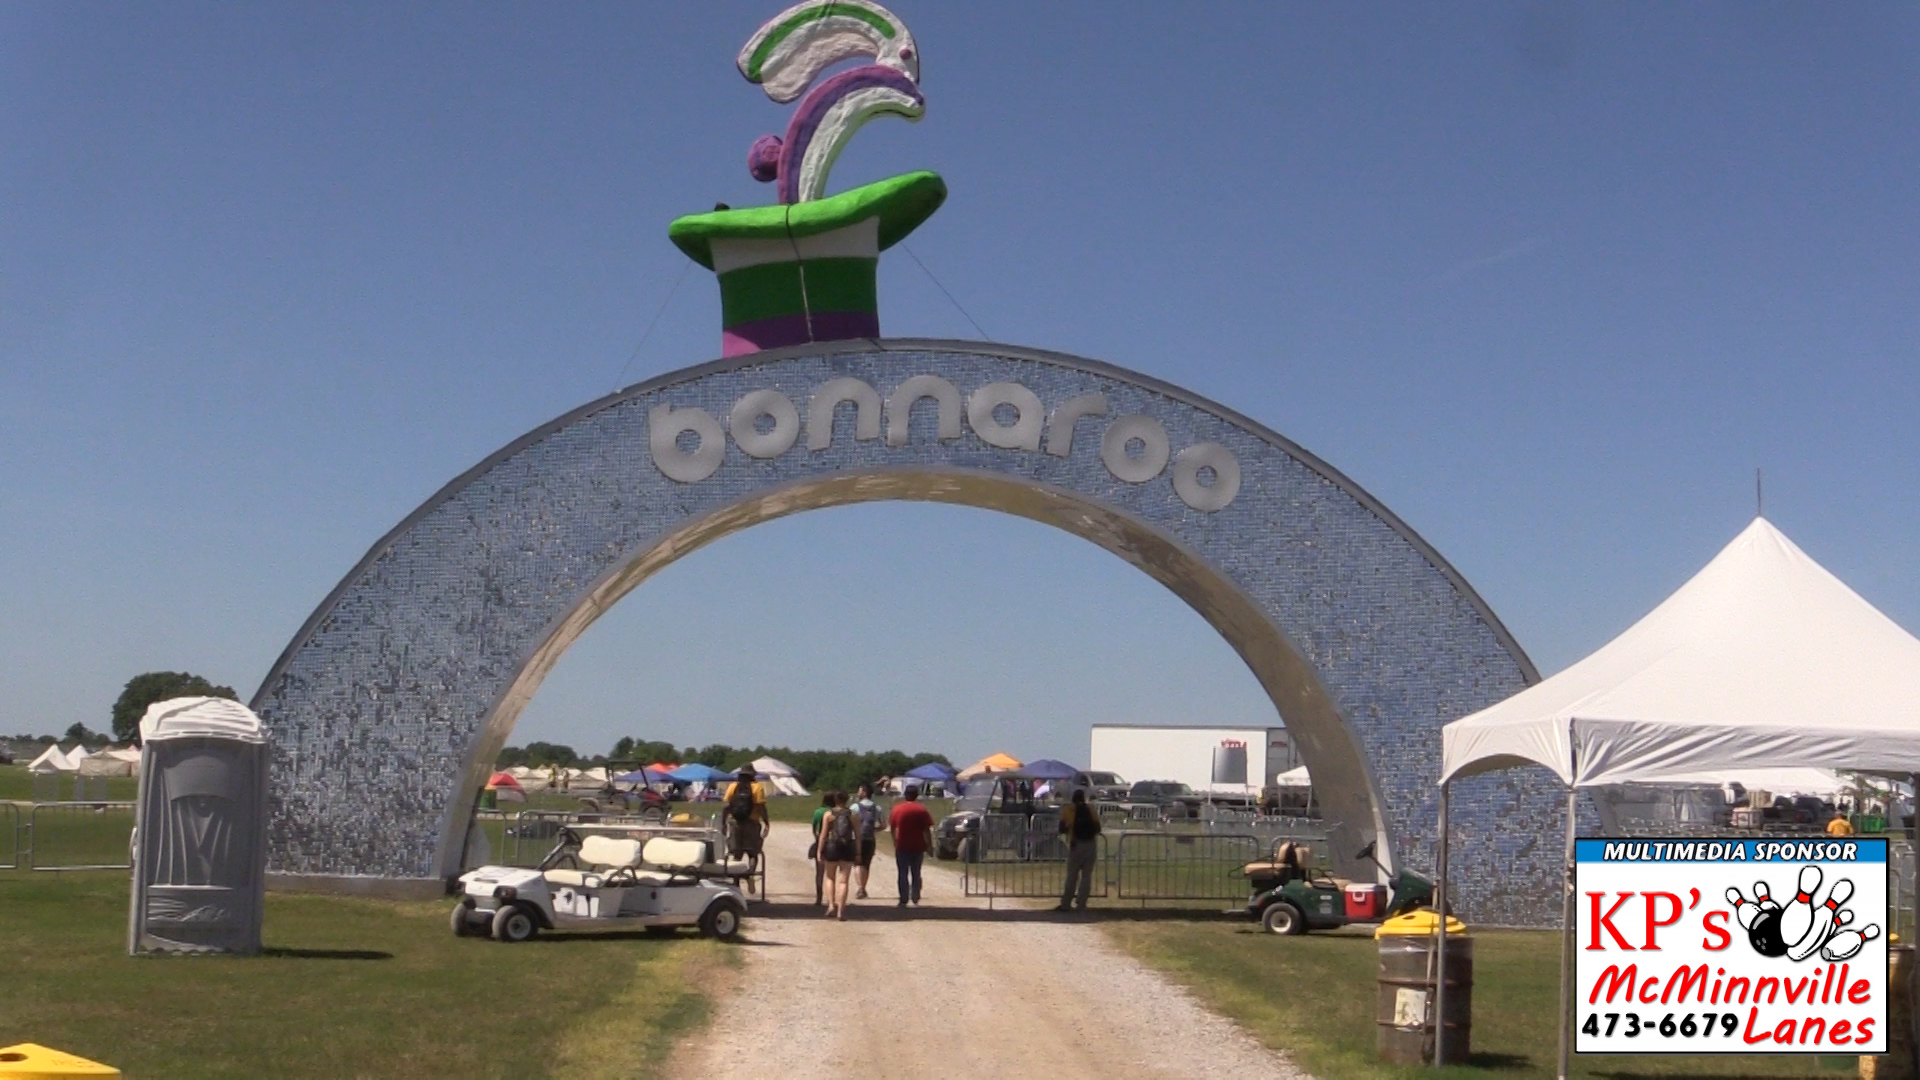 VIDEO: Bonnaroo adds convenience for campers